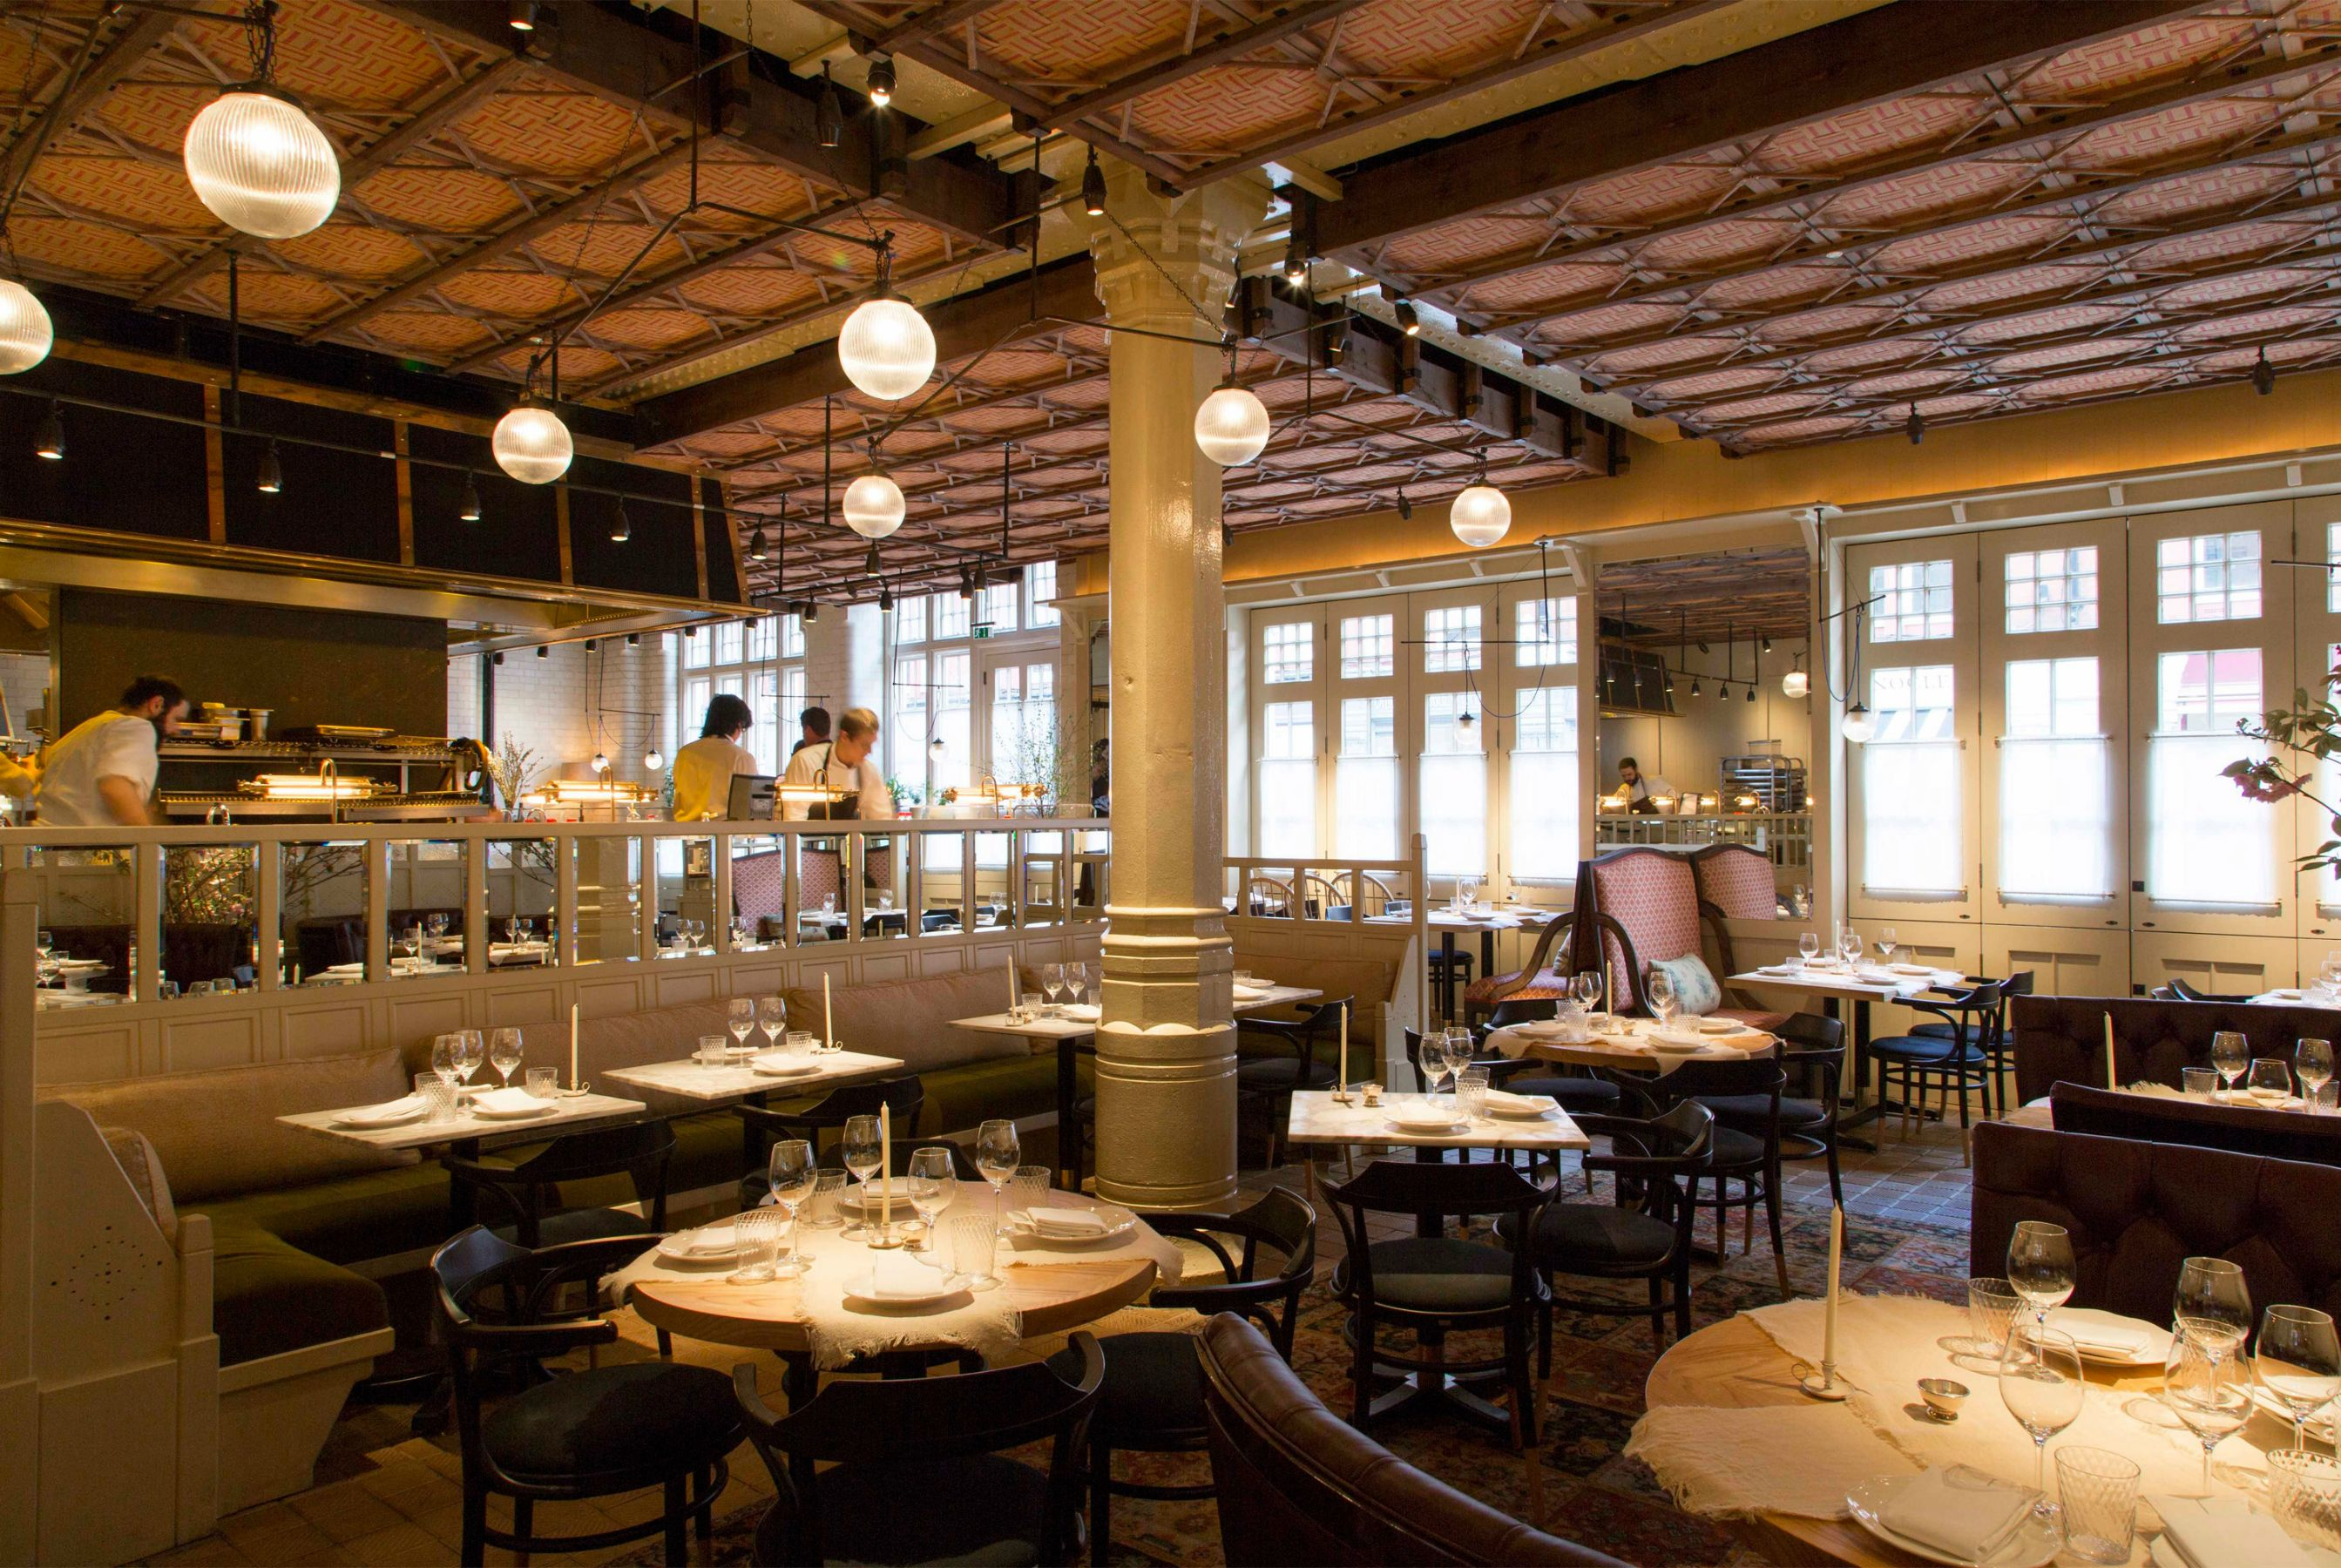 Chiltern firehouse one smokin hot table article for Articles cuisine paris